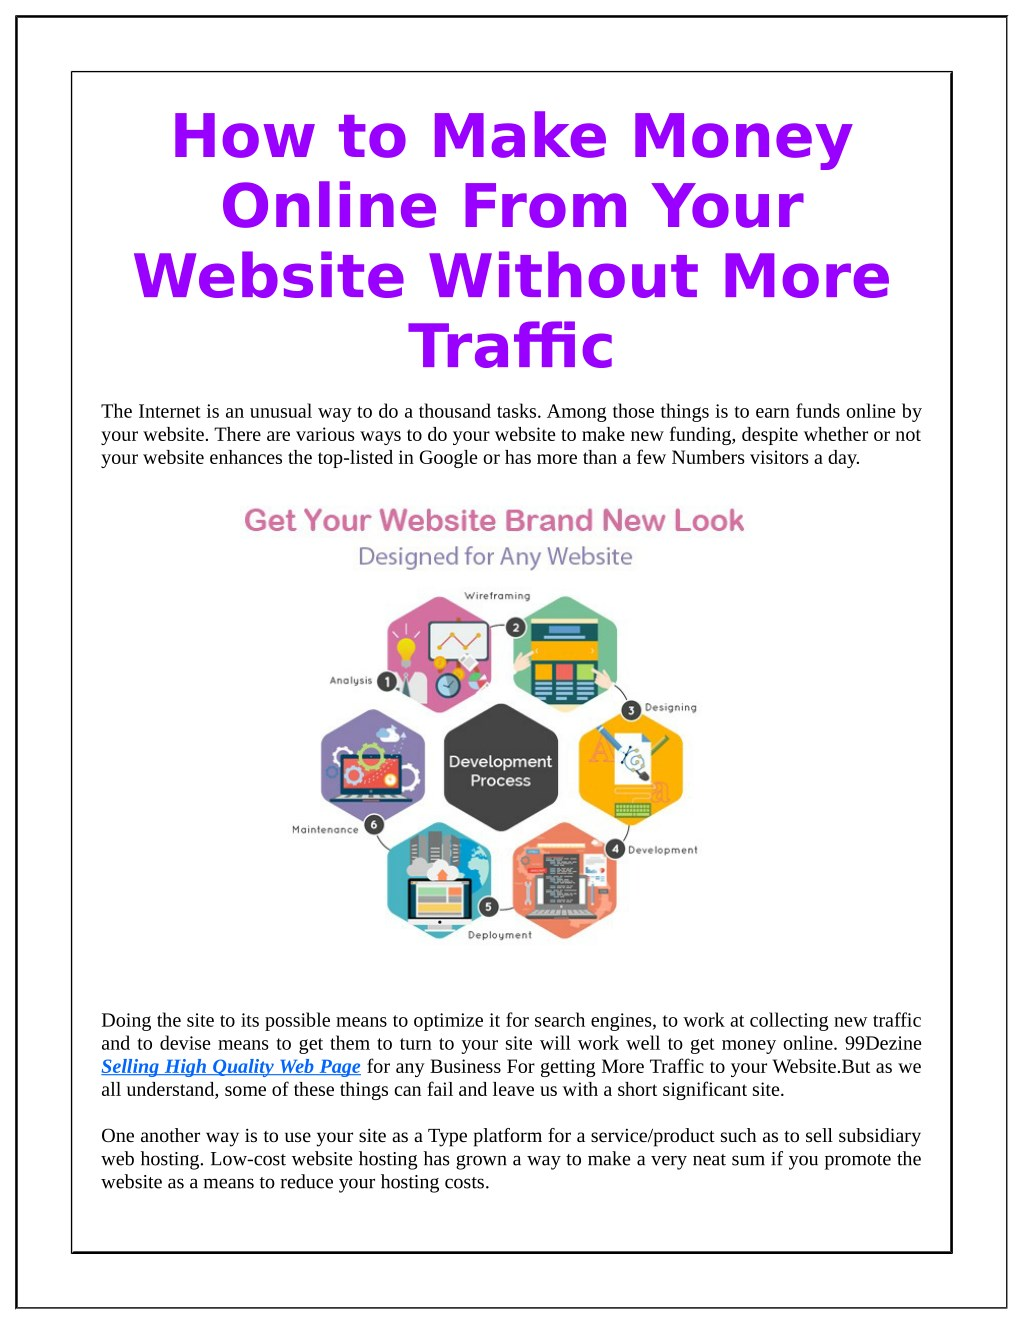 ppt how to make money online from your website without more